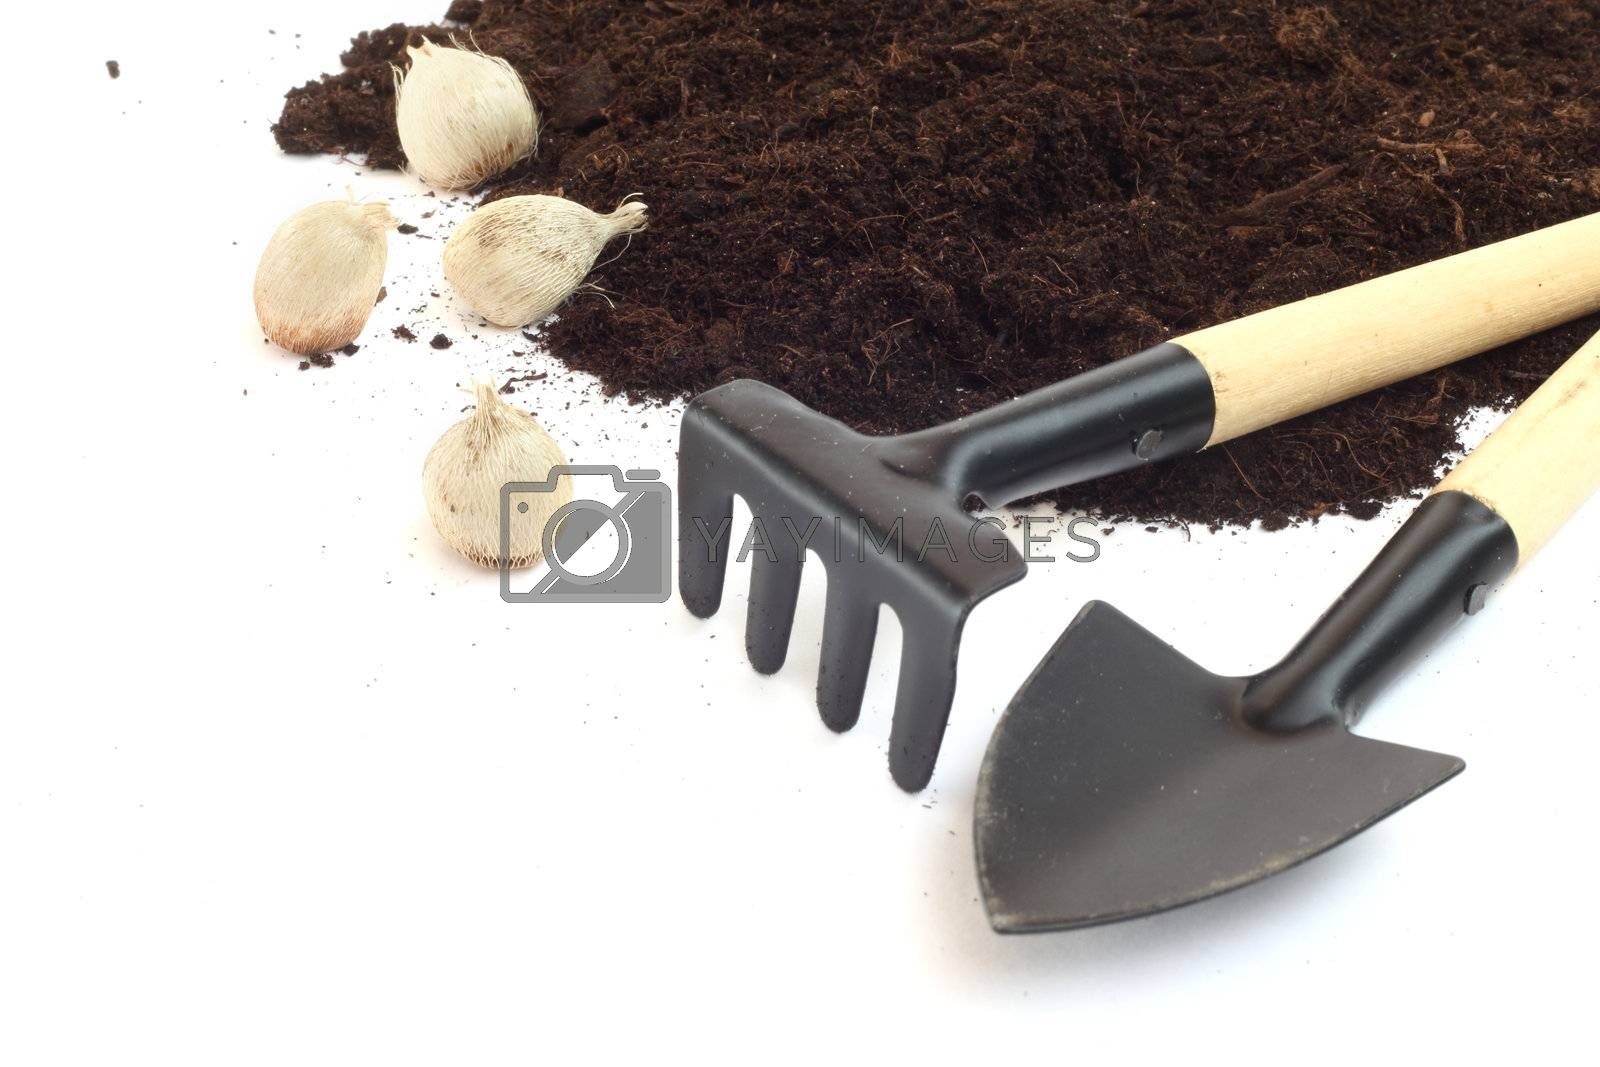 Gardening tools and flower bulbs isolated on white